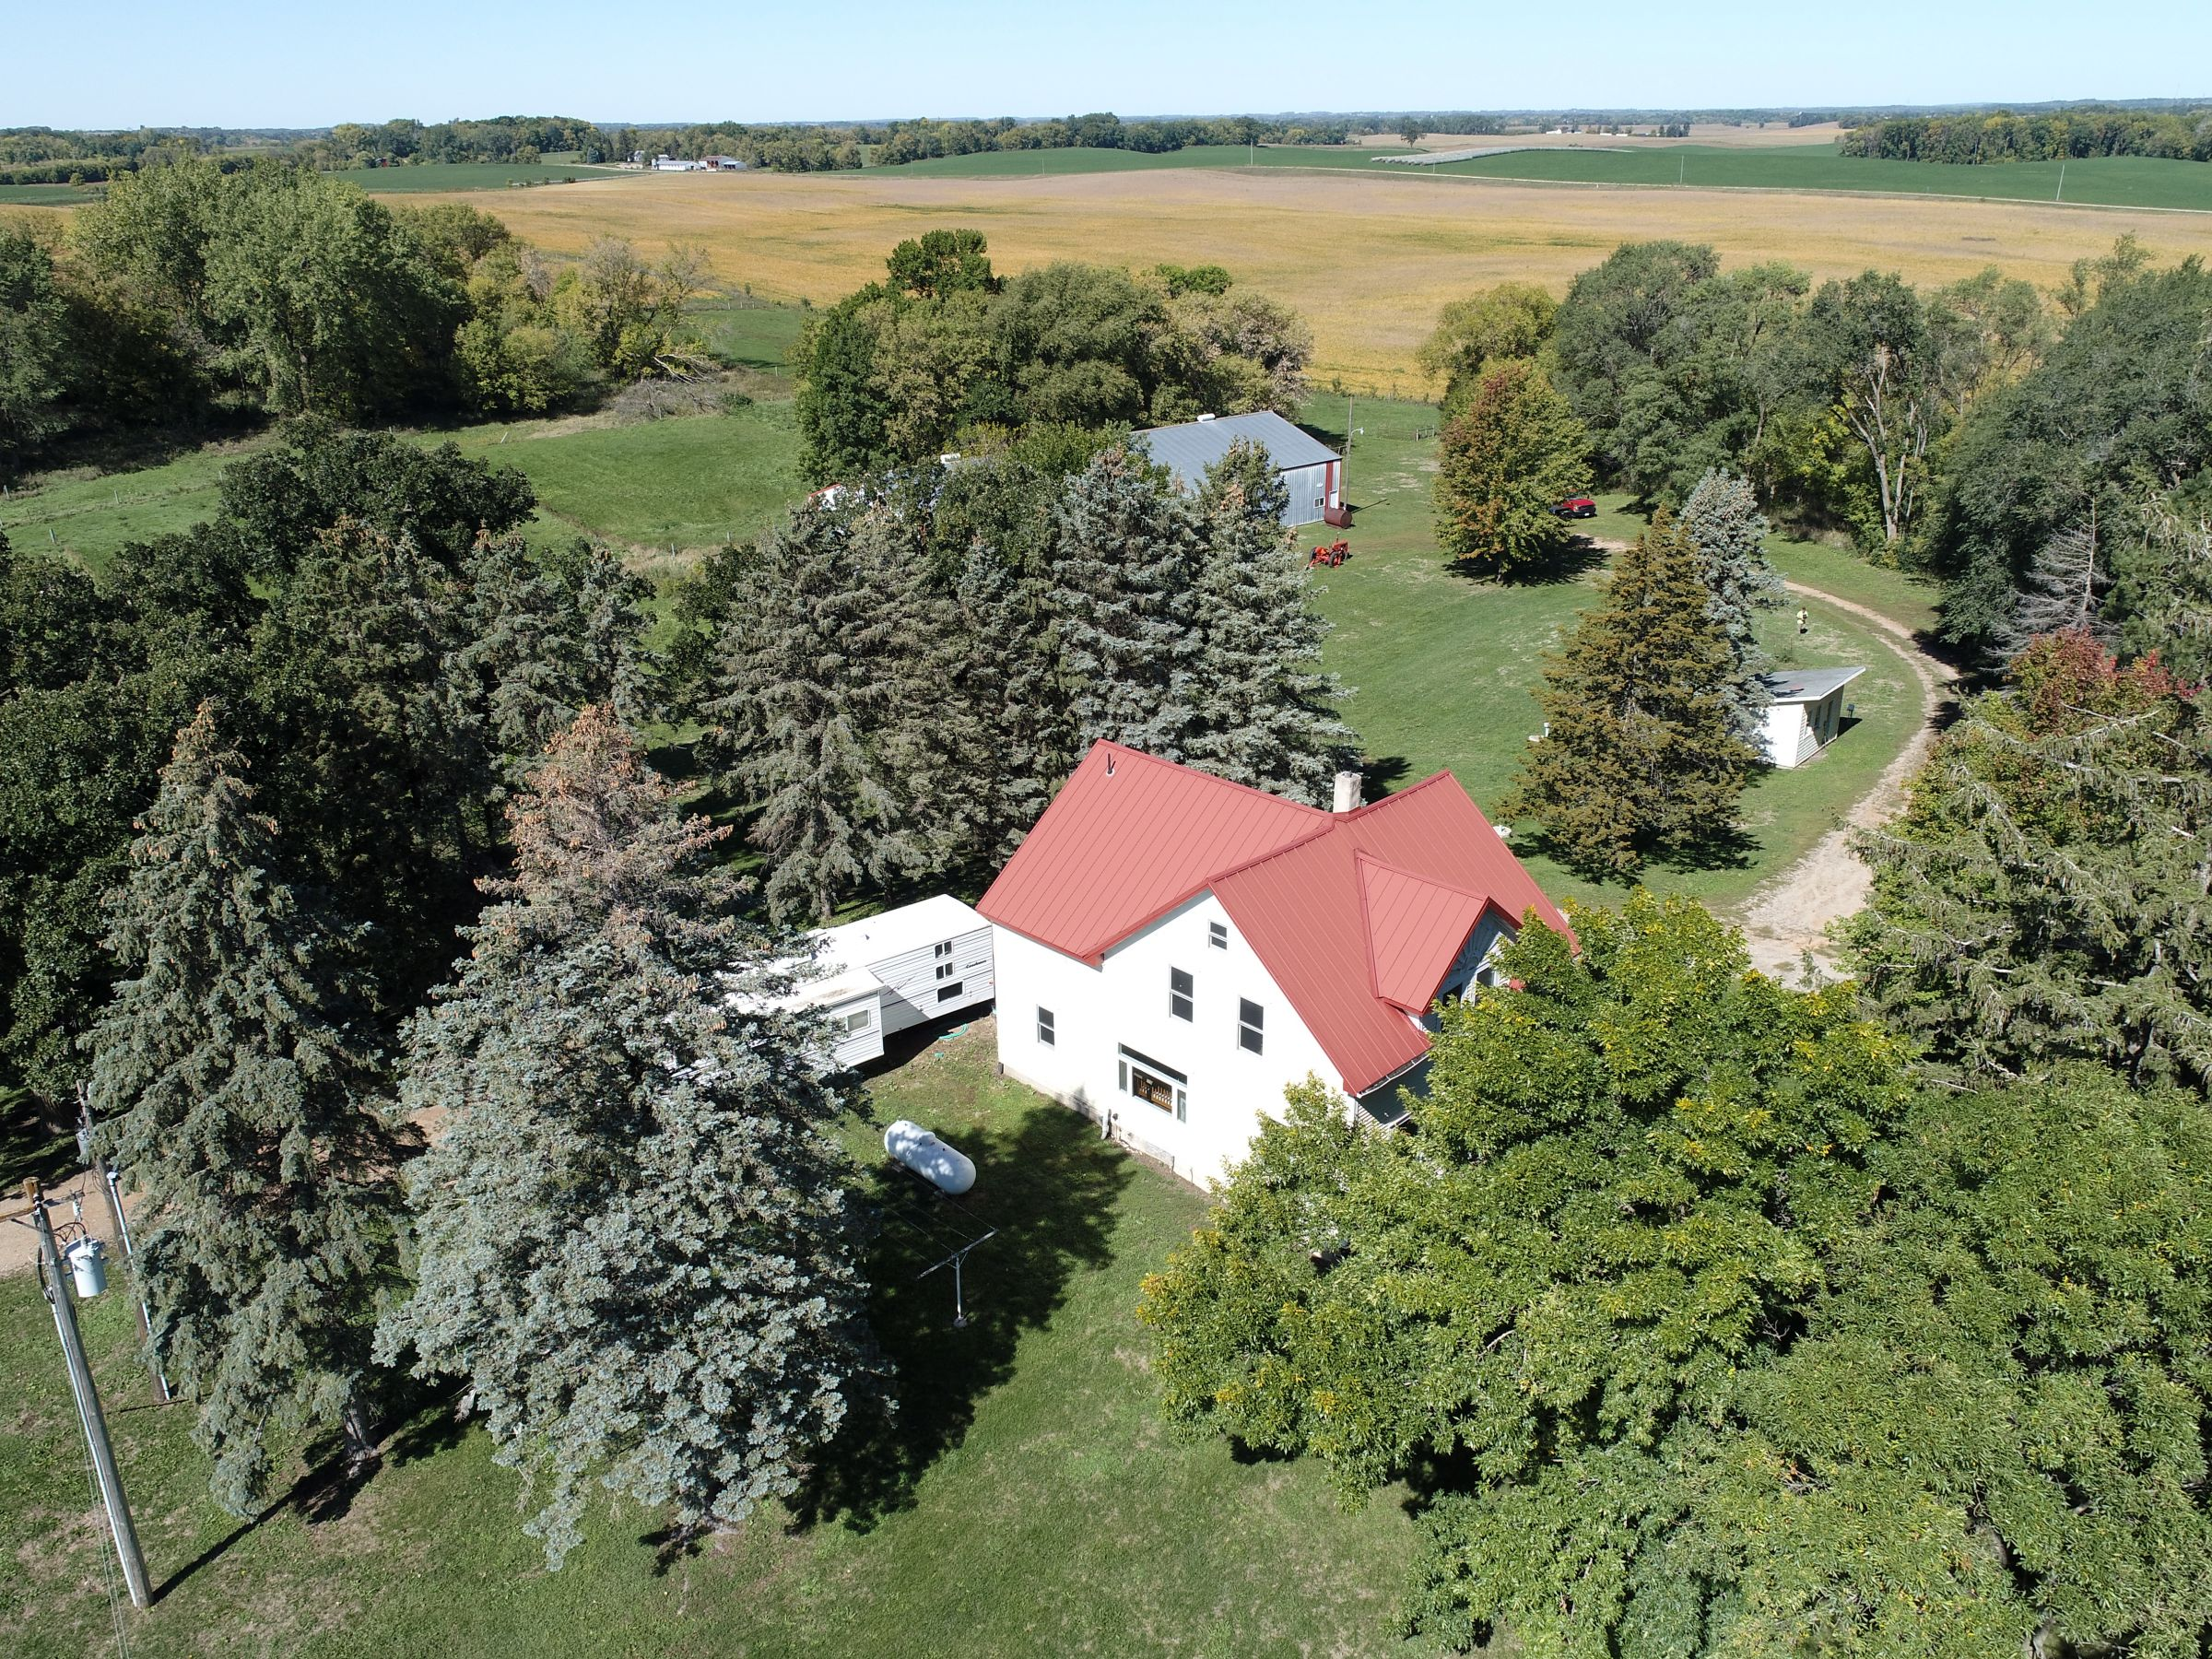 residential-wright-county-minnesota-0-acres-listing-number-15779-1-2021-09-27-235813.JPG